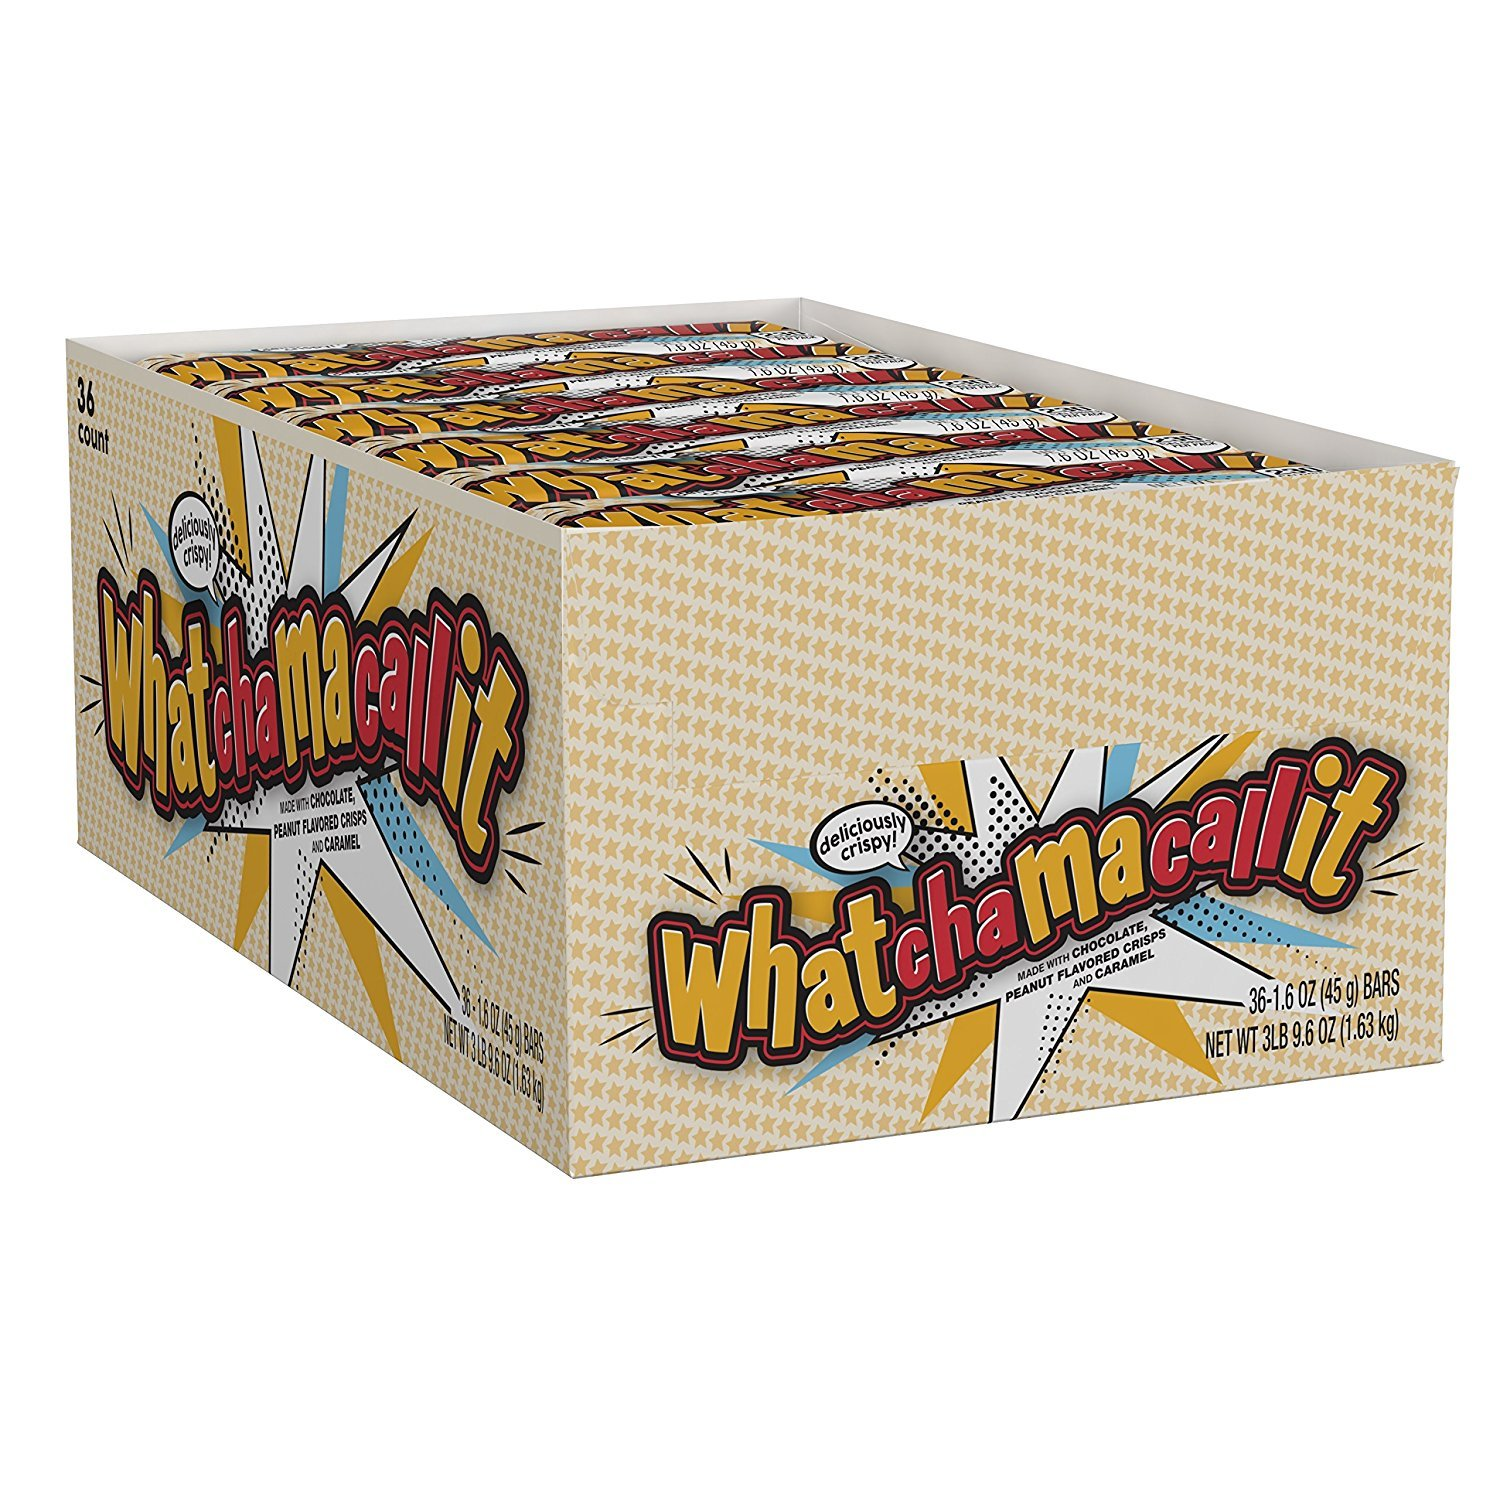 Whatchamacallit Candy Bar- 36 / Box by Whatchamacallit